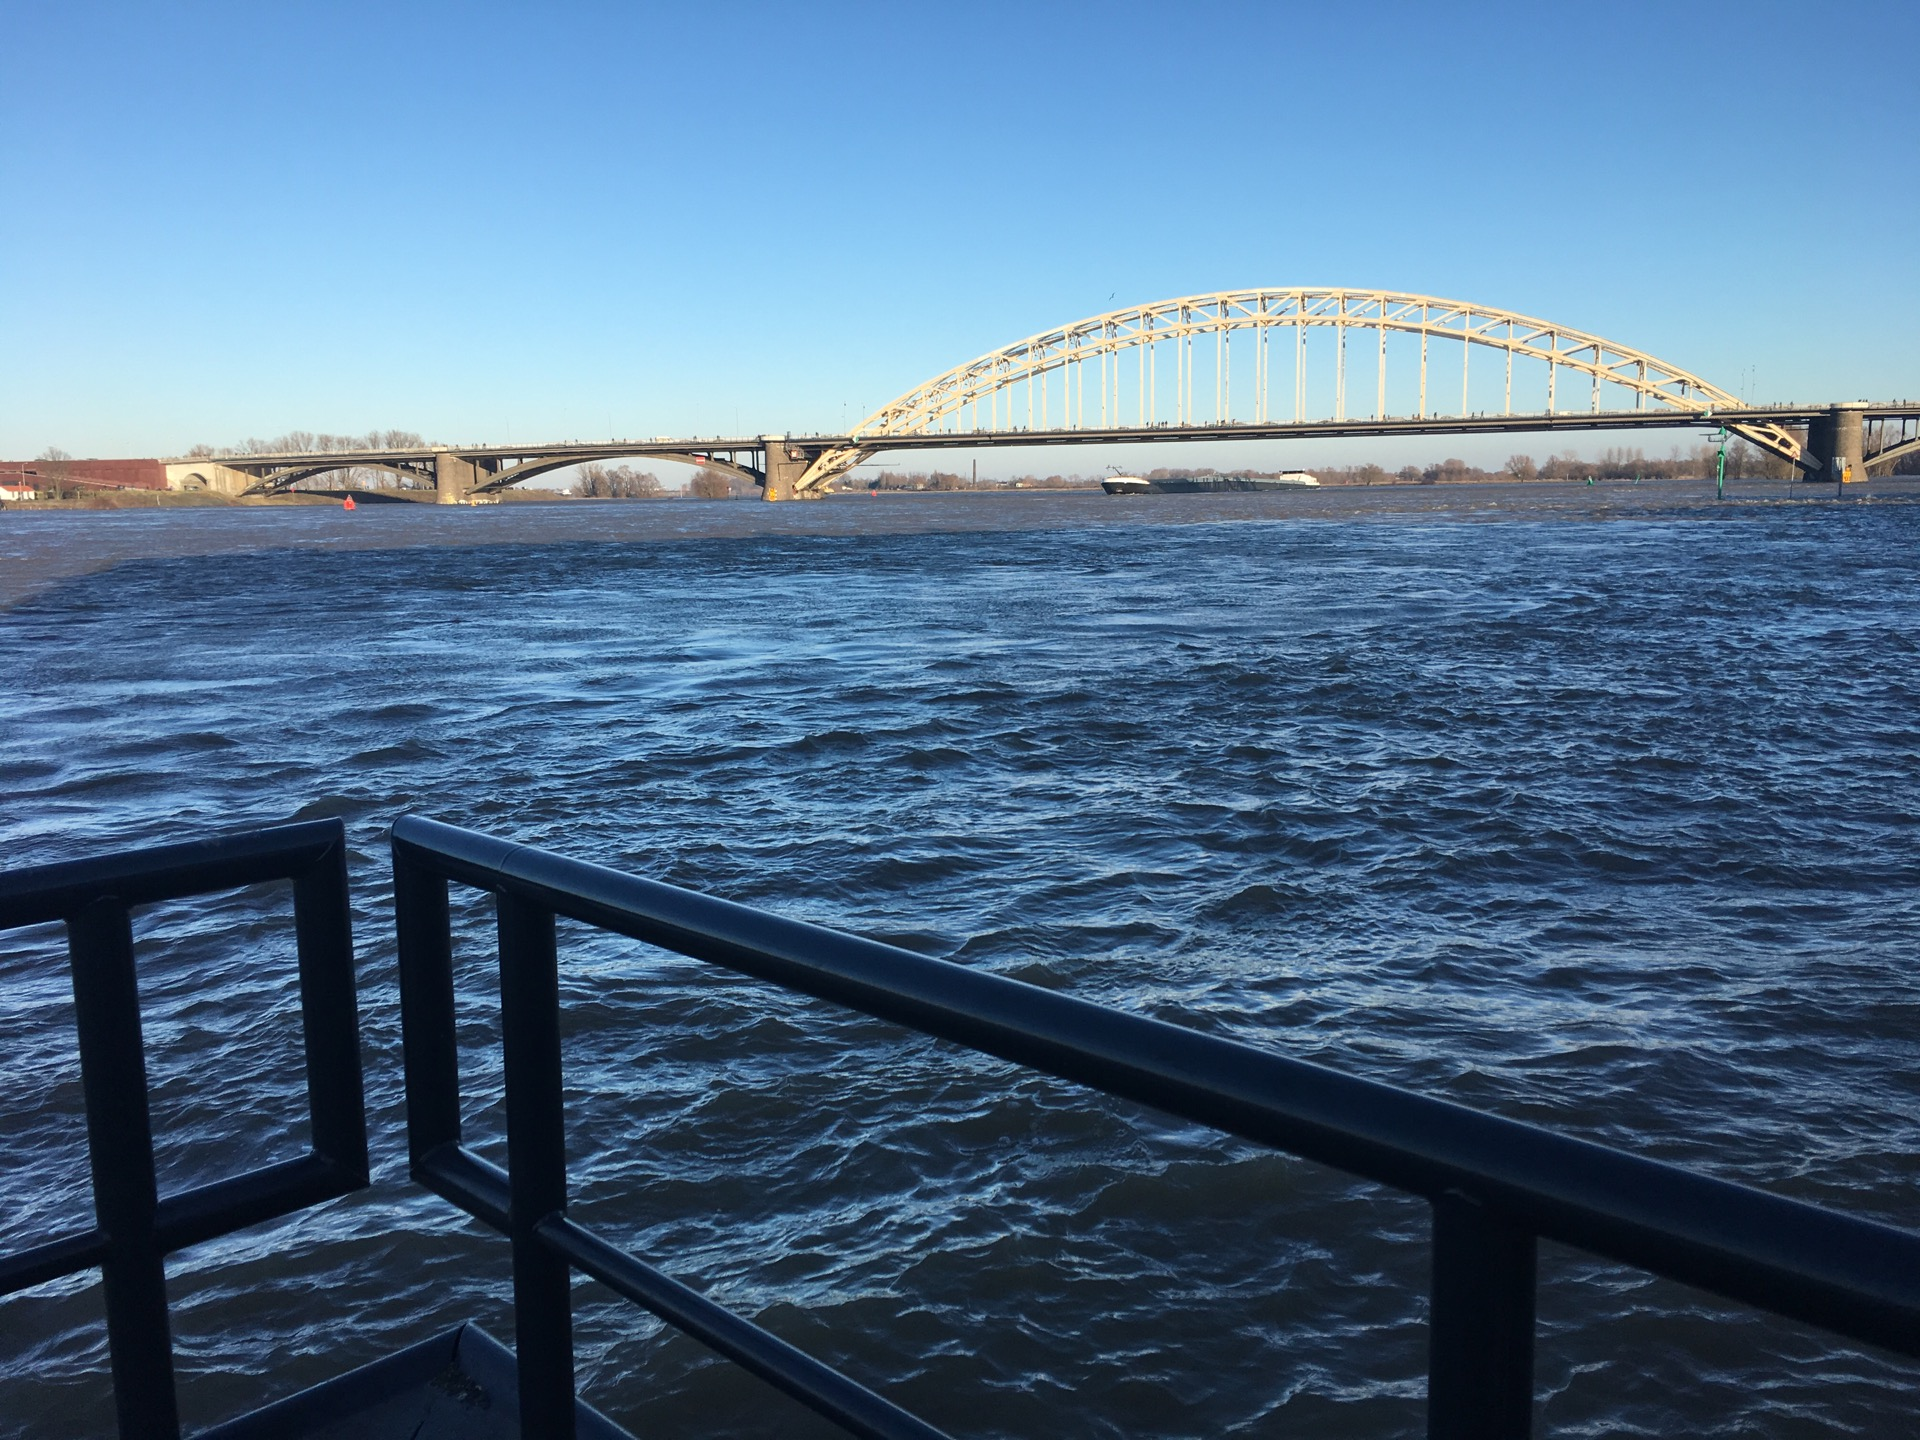 The water is so high... normally it's around +6, but we're at +11,37 meters now.